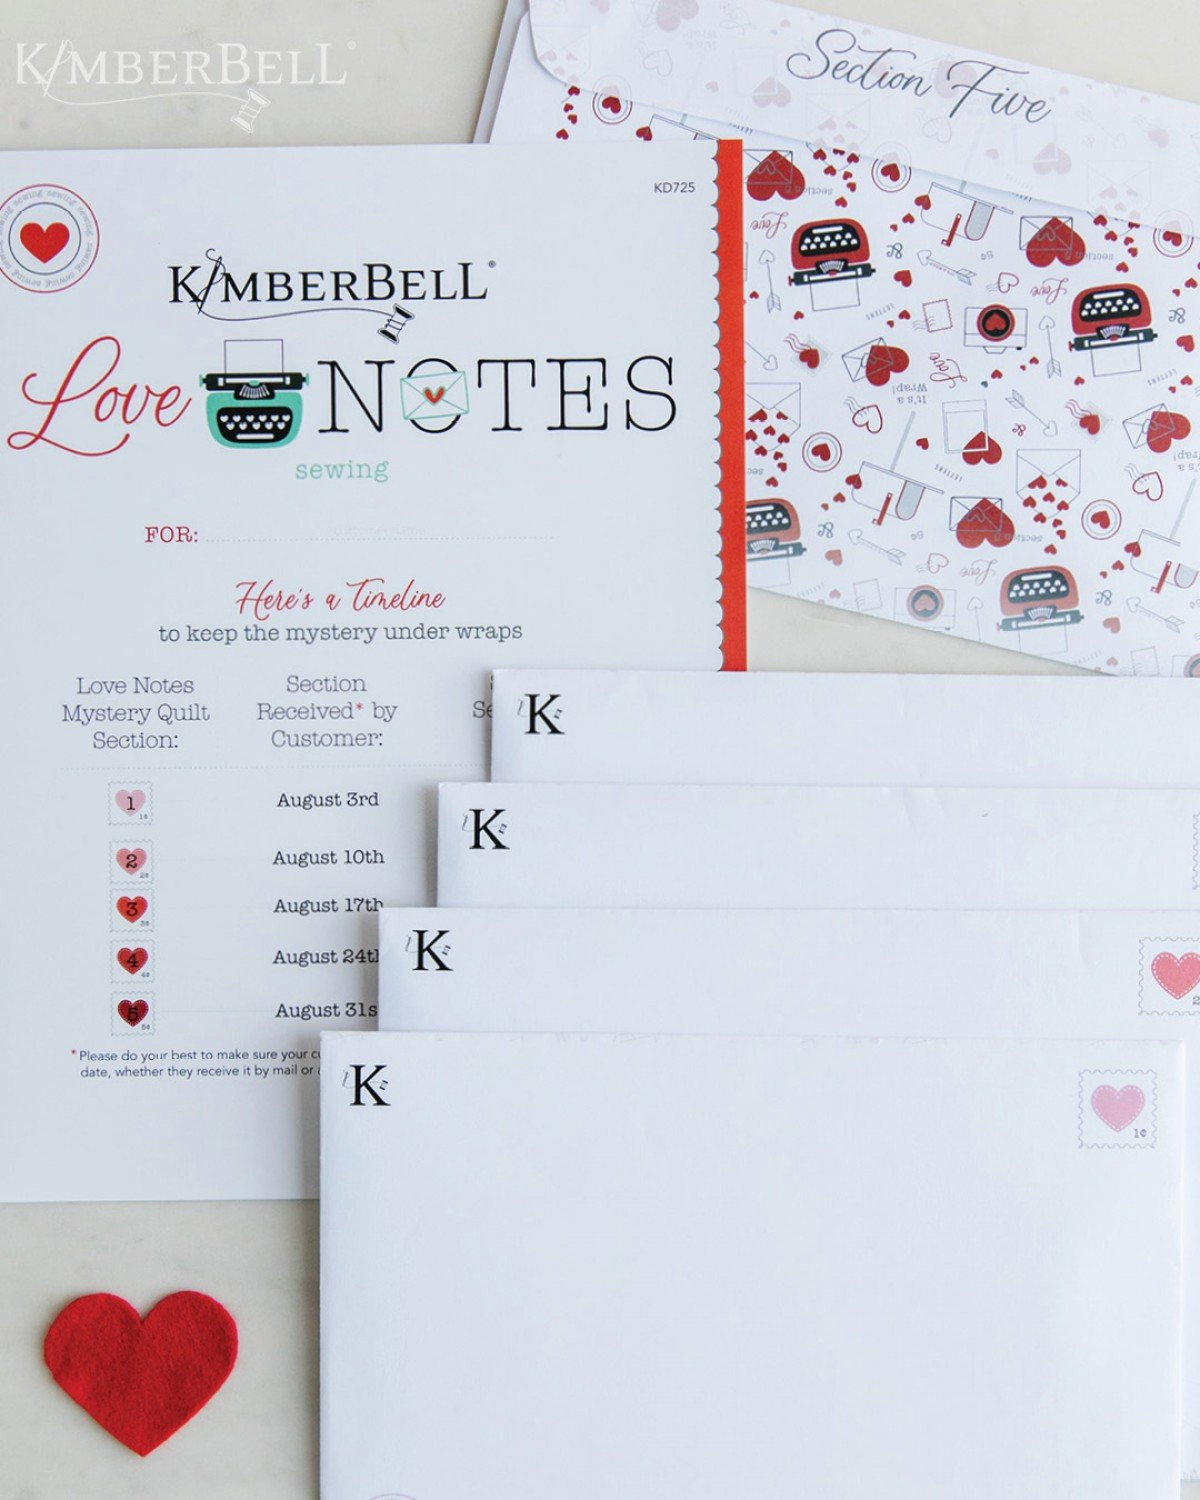 Kimberbell Love Notes Mystery Quilt